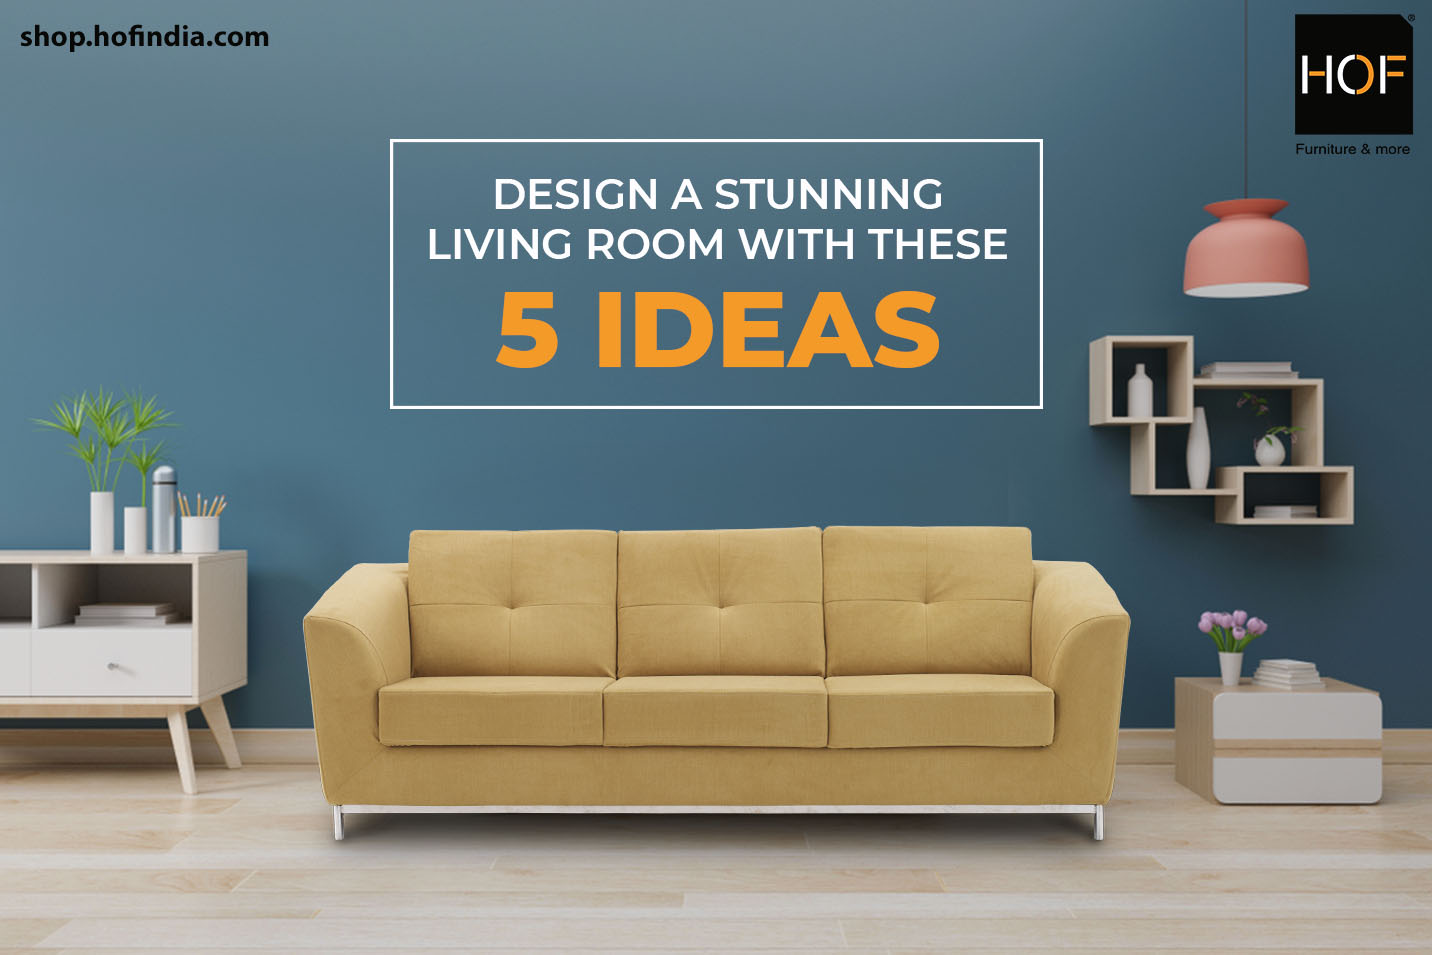 Design a stunning living room with these 5 ideas